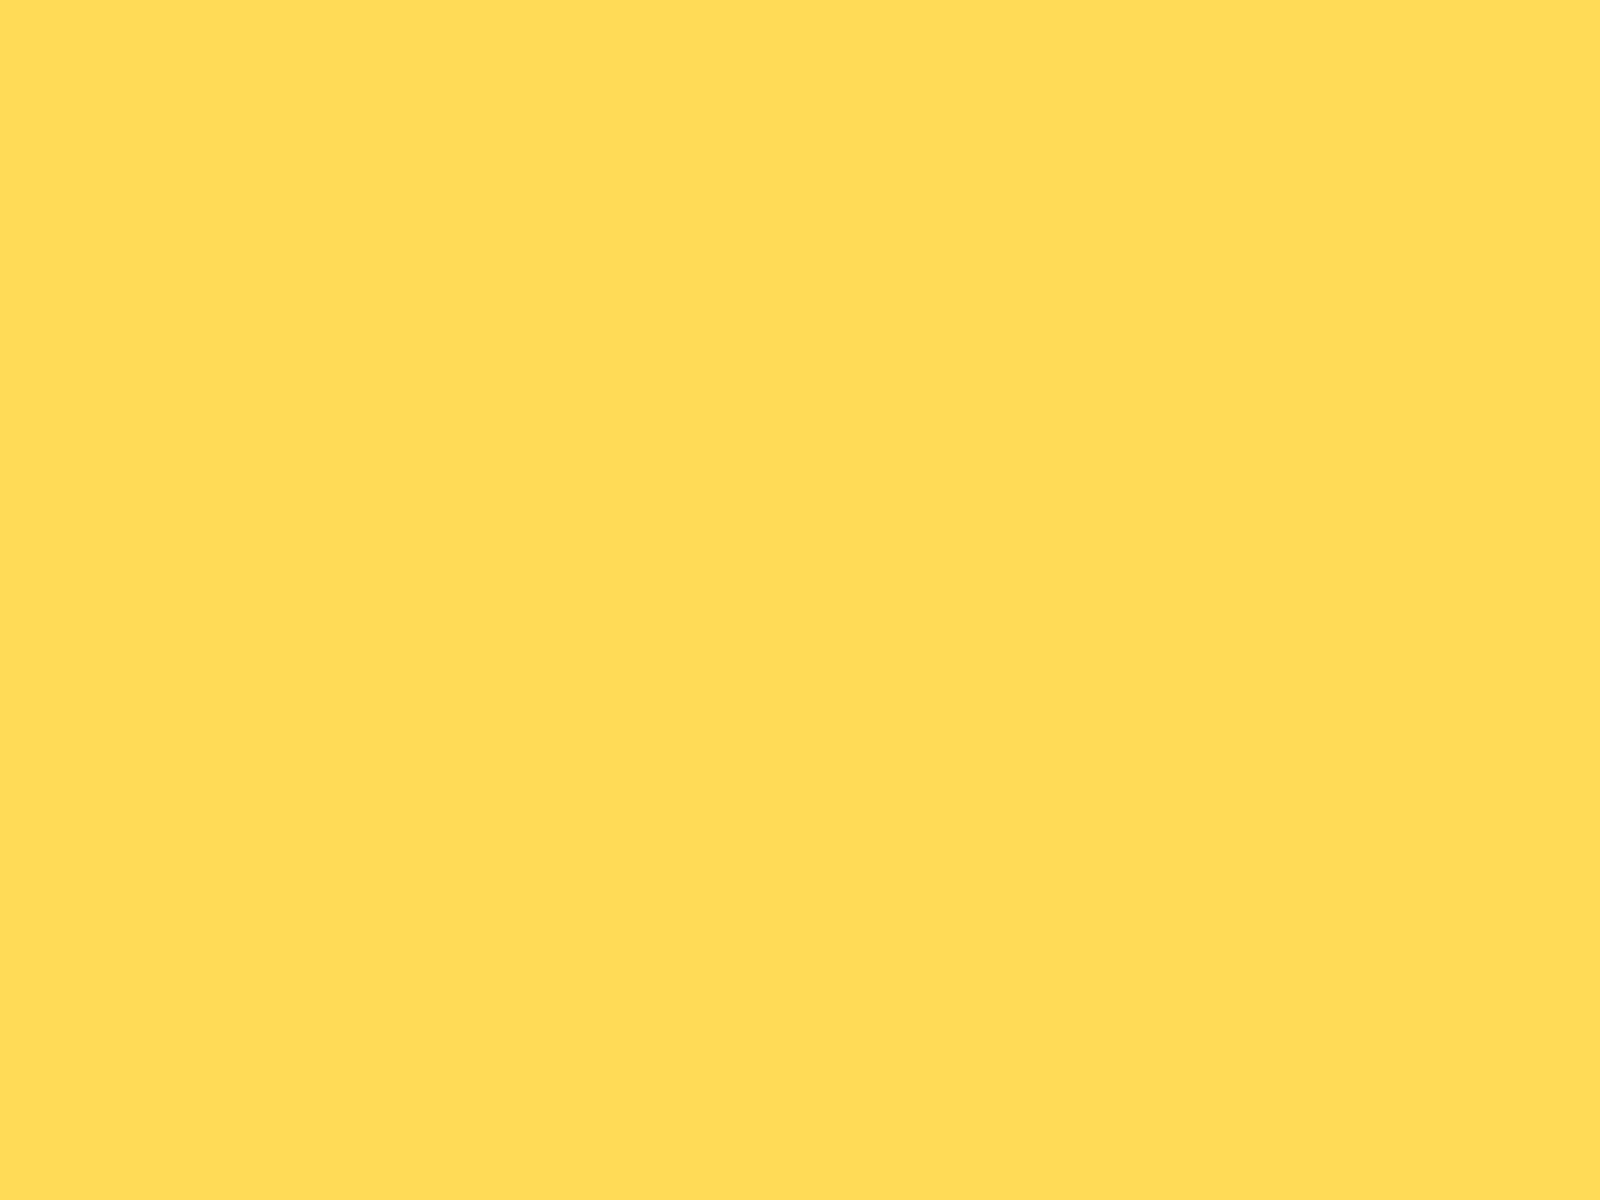 1600x1200 Mustard Solid Color Background